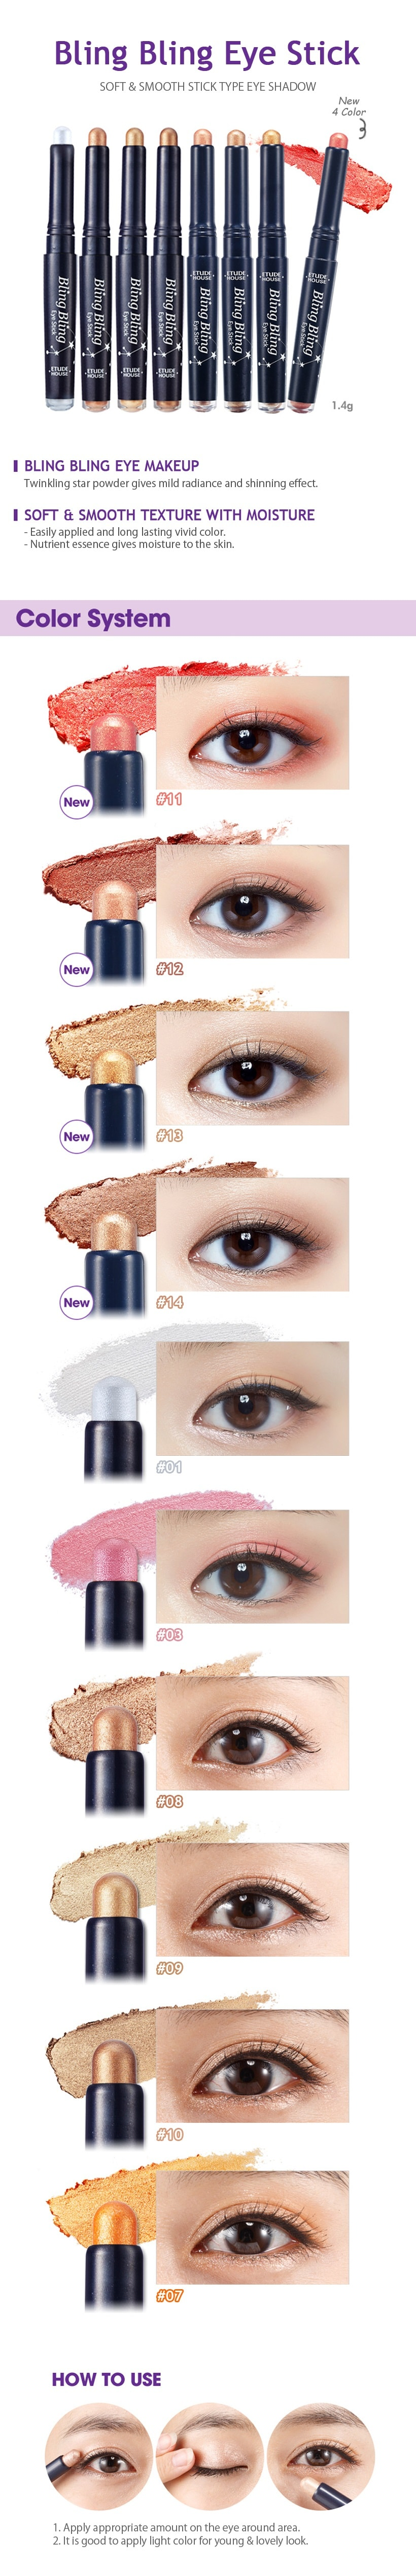 ETUDE HOUSE Bling Bling Eye Stick